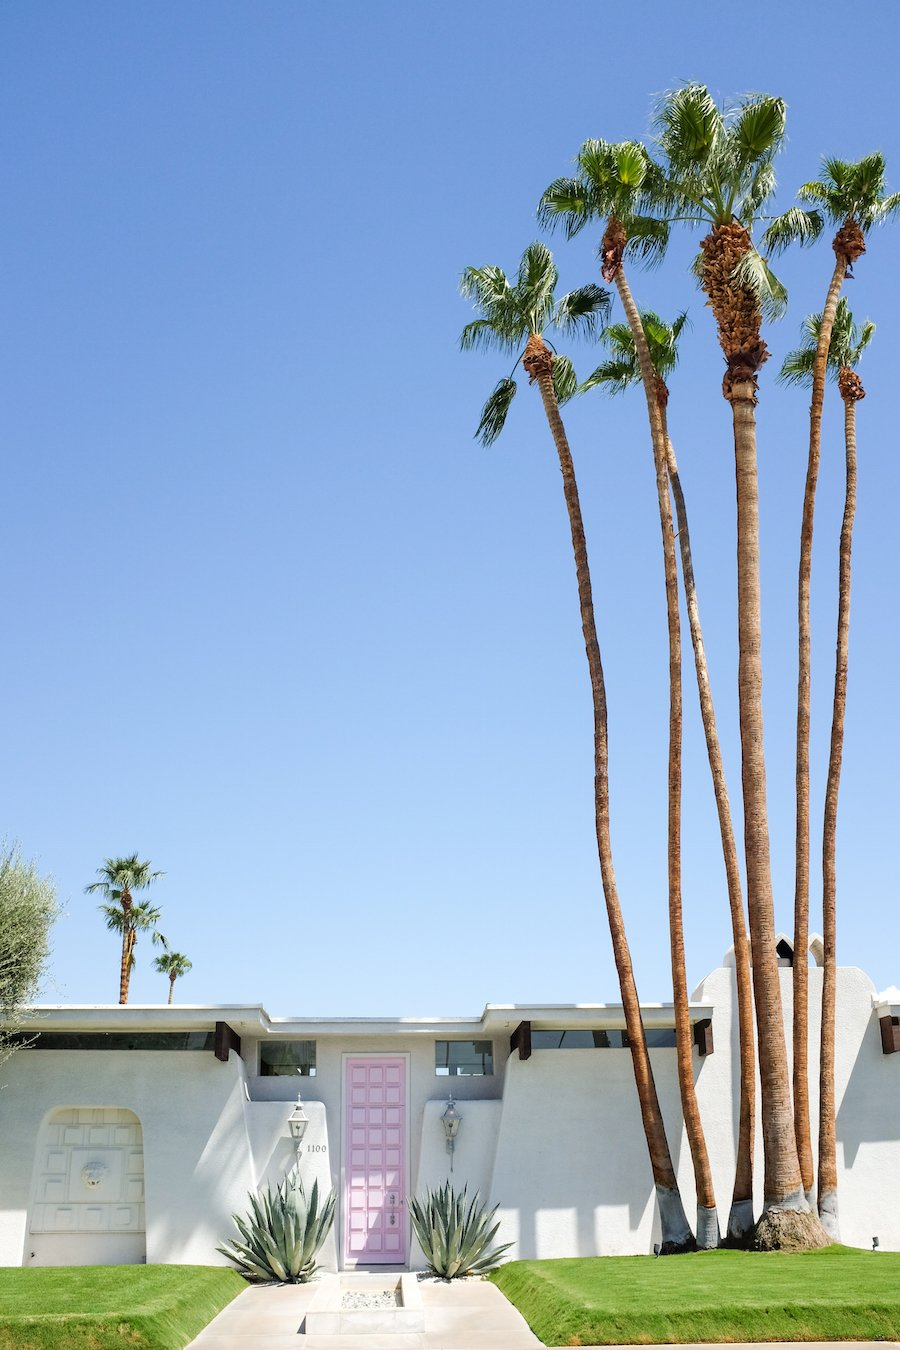 Take a Palm Springs Door Tour to see all the bright & colorful midcentury modern front doors, Instagram Photos, Insta-worthy, Driving Tour, Architecture Tour, Weekend Trip, Palm Springs Guide, Travel Guide, What to do in Palm Springs, Walking Door, Photo Tour, That Pink Door Address, Salty Canary